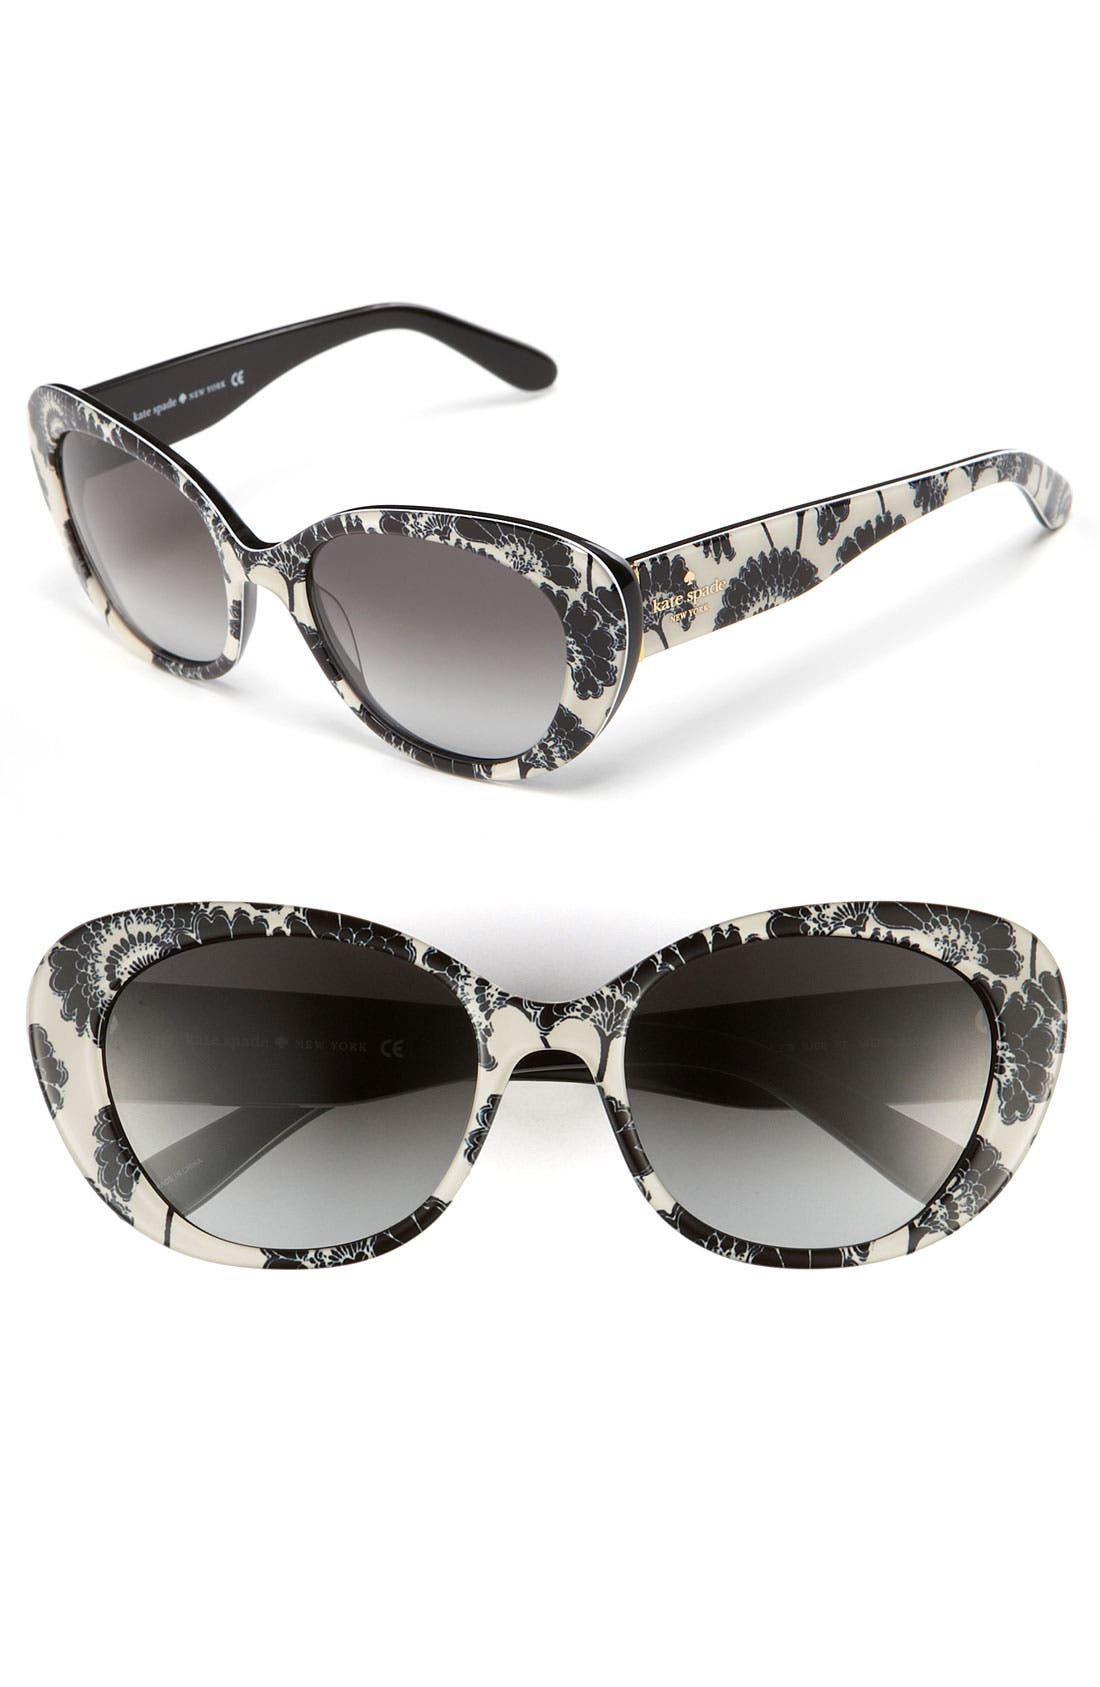 Main Image - kate spade new york 'franca 2' retro sunglasses